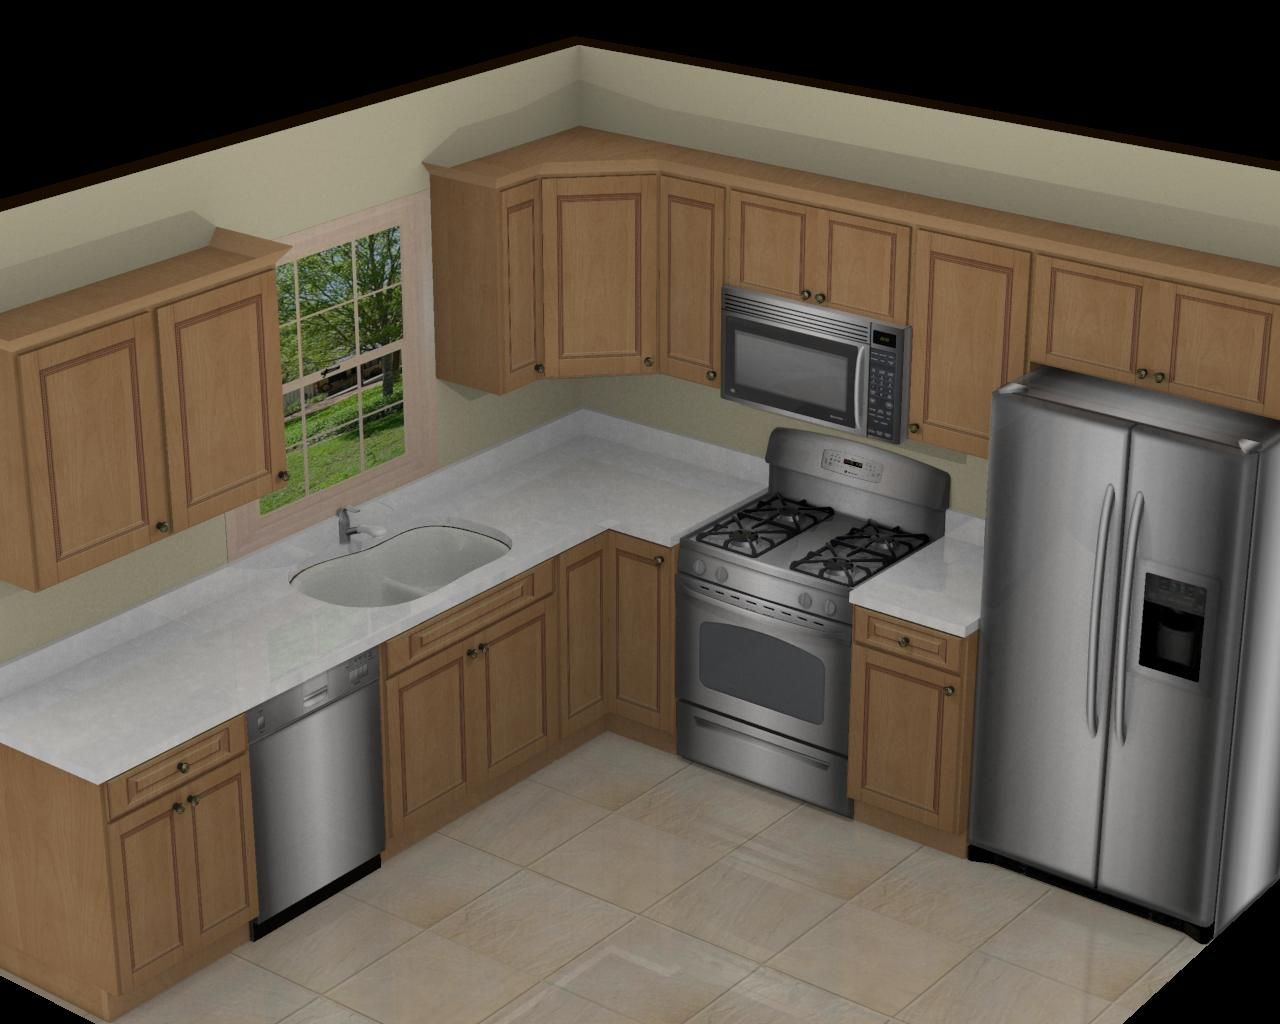 10x10 Kitchen On Pinterest L Shaped Kitchen Kitchen